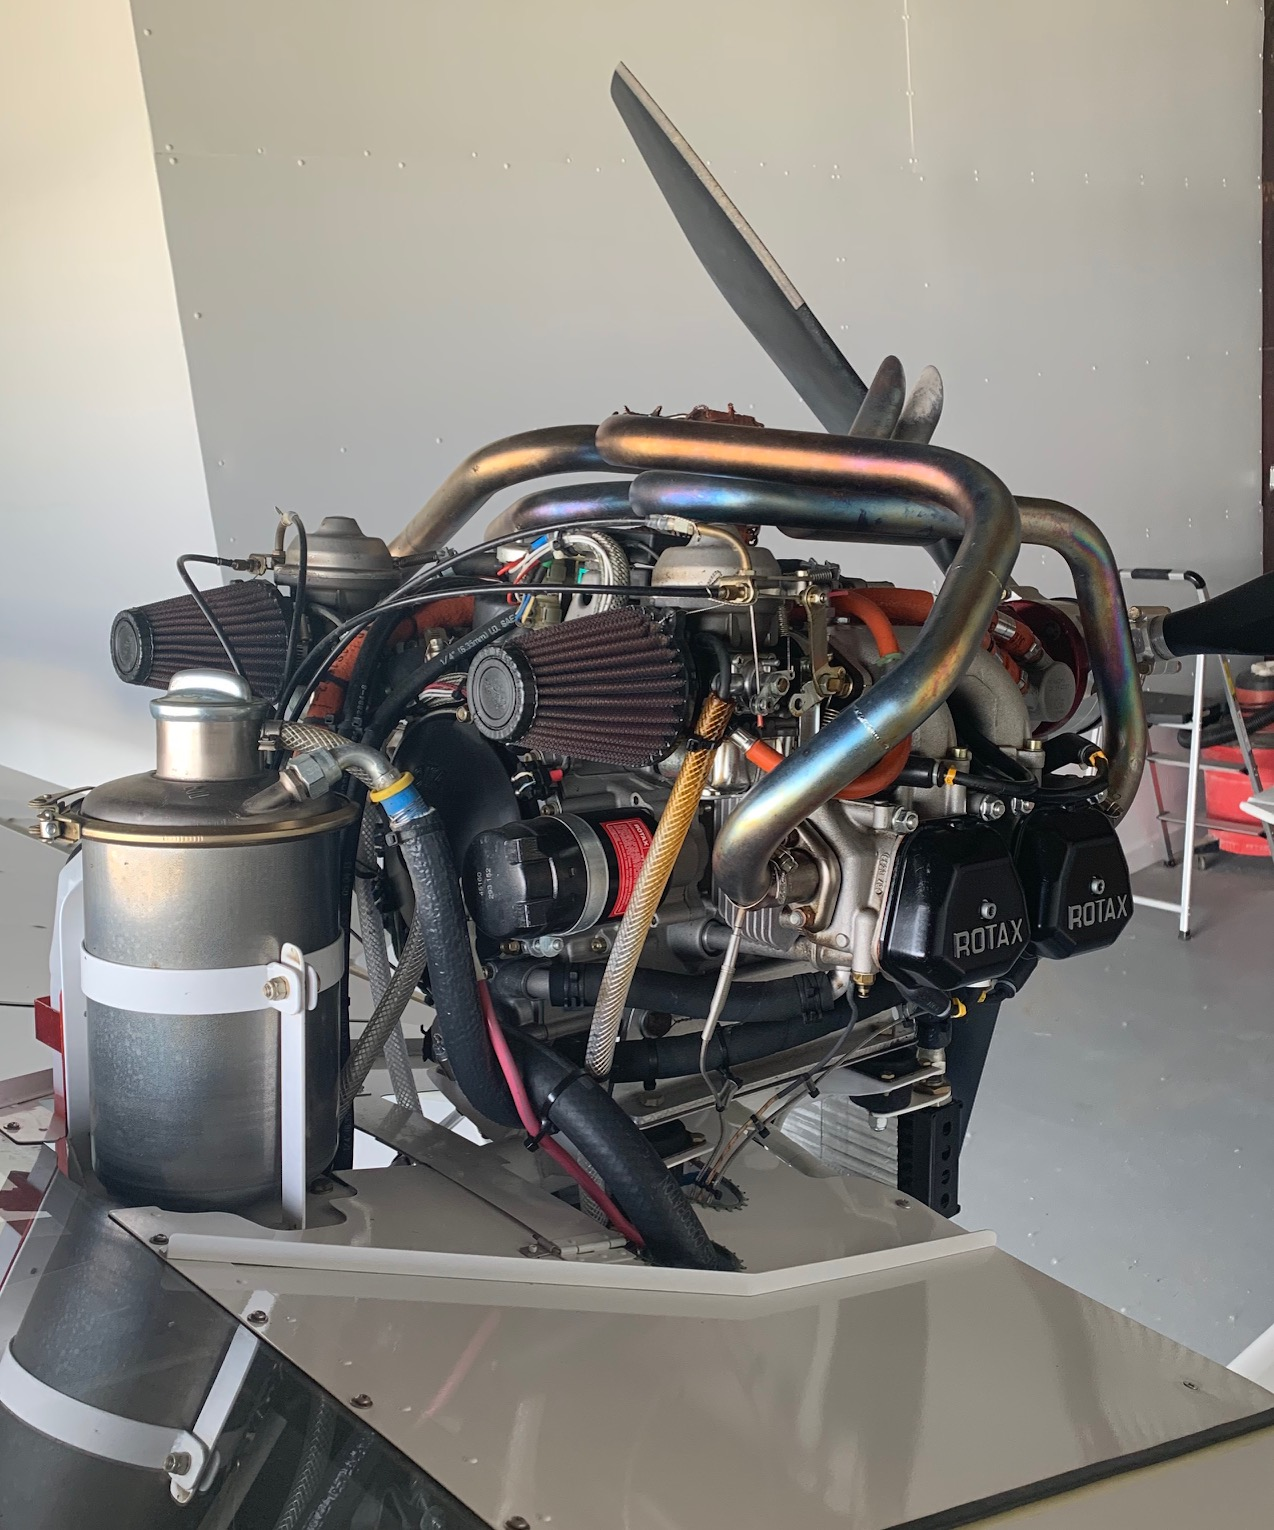 www.rotax-owner.com